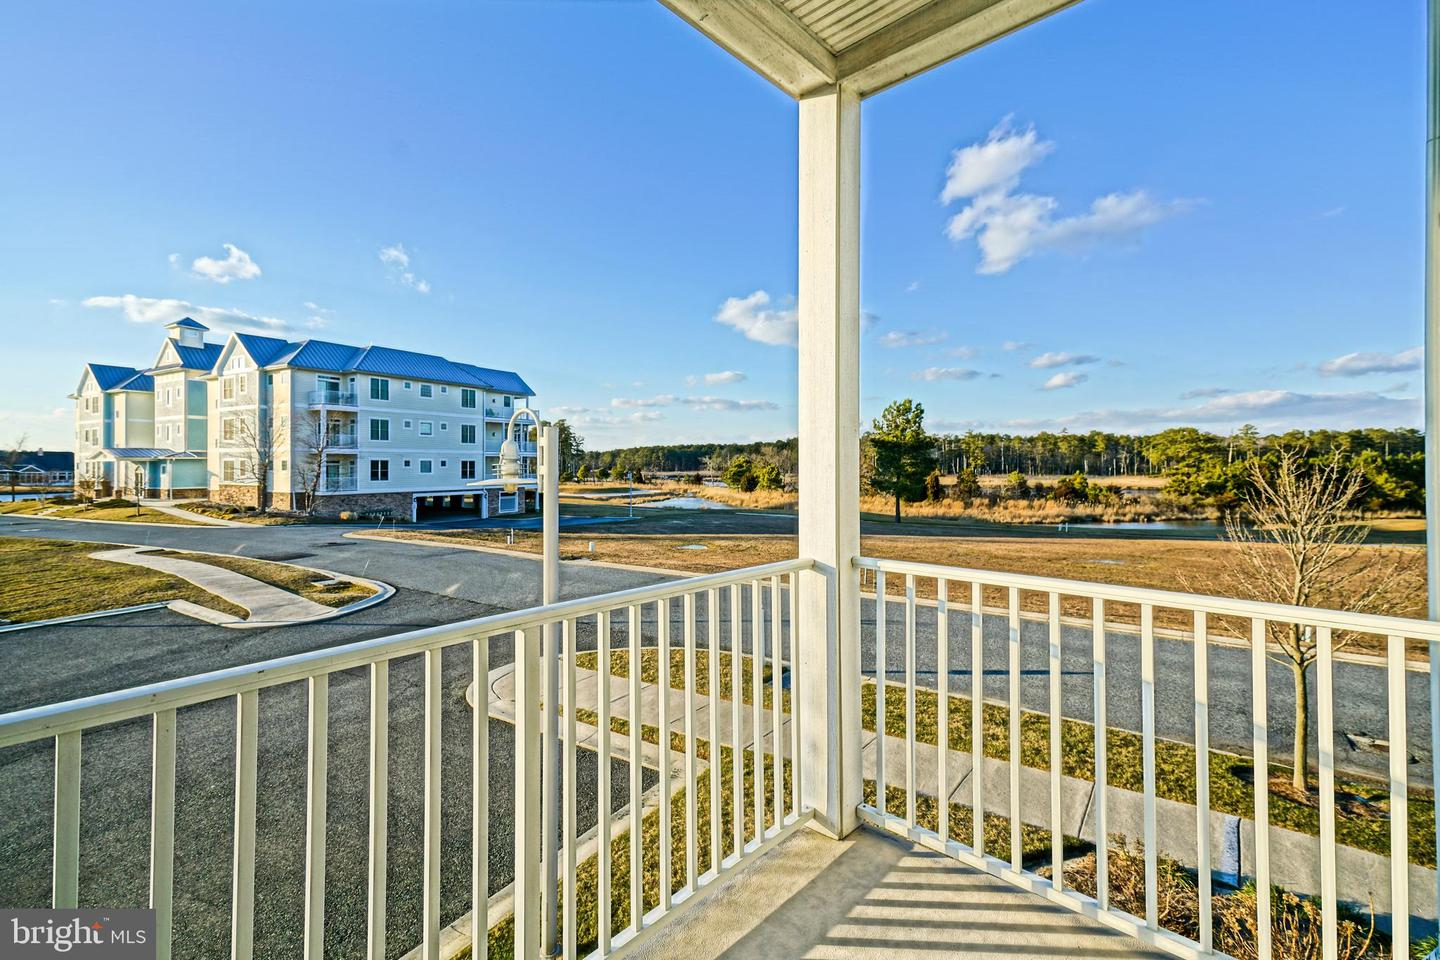 DESU133638-301520141039-2019-08-30-11-21-59 27270 18th Blvd #13105 | Millsboro, DE Real Estate For Sale | MLS# Desu133638  - Lee Ann Group